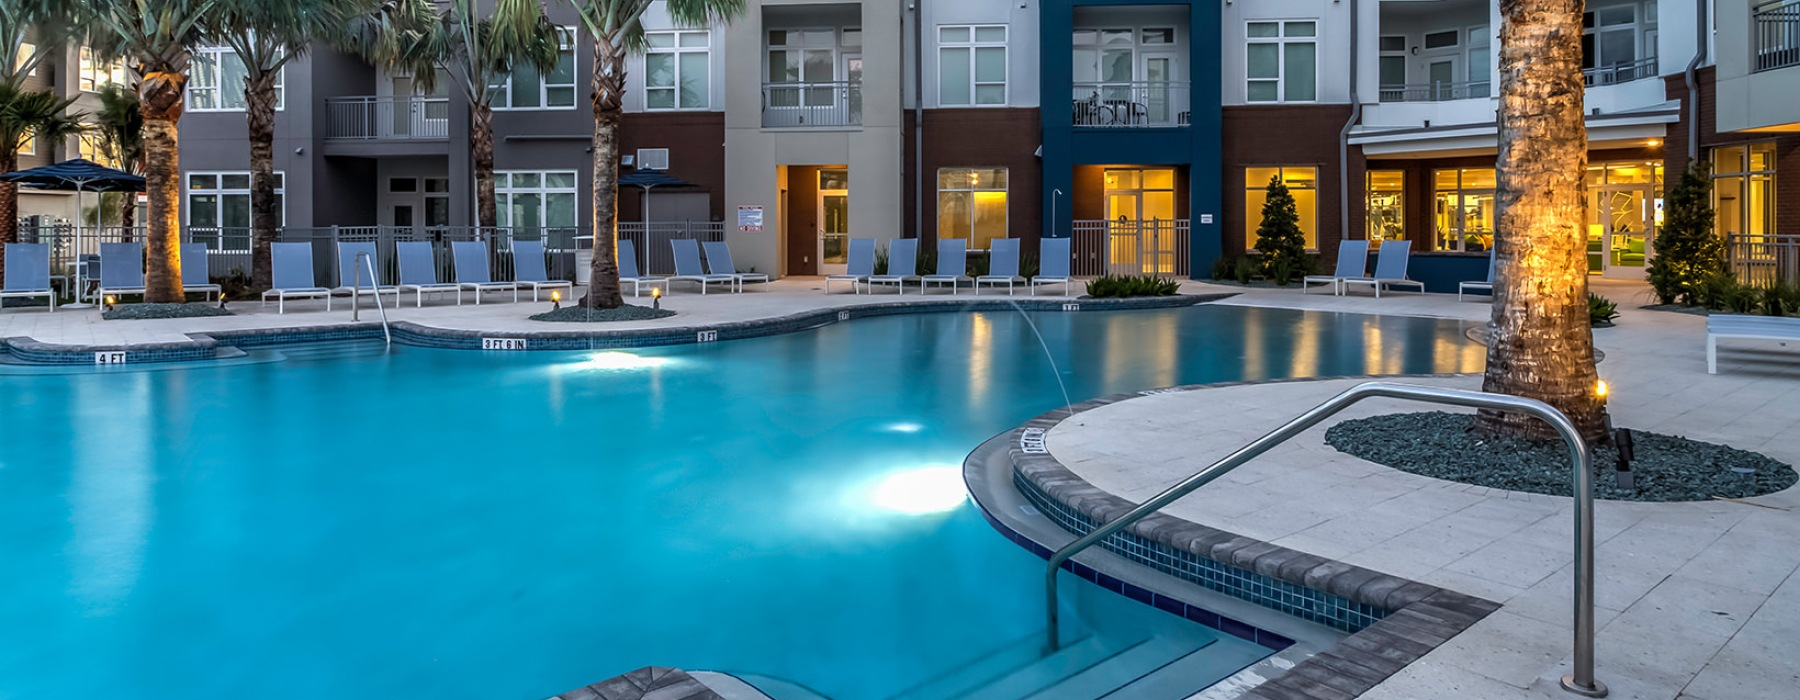 Large pool with poolside lounge chairs.